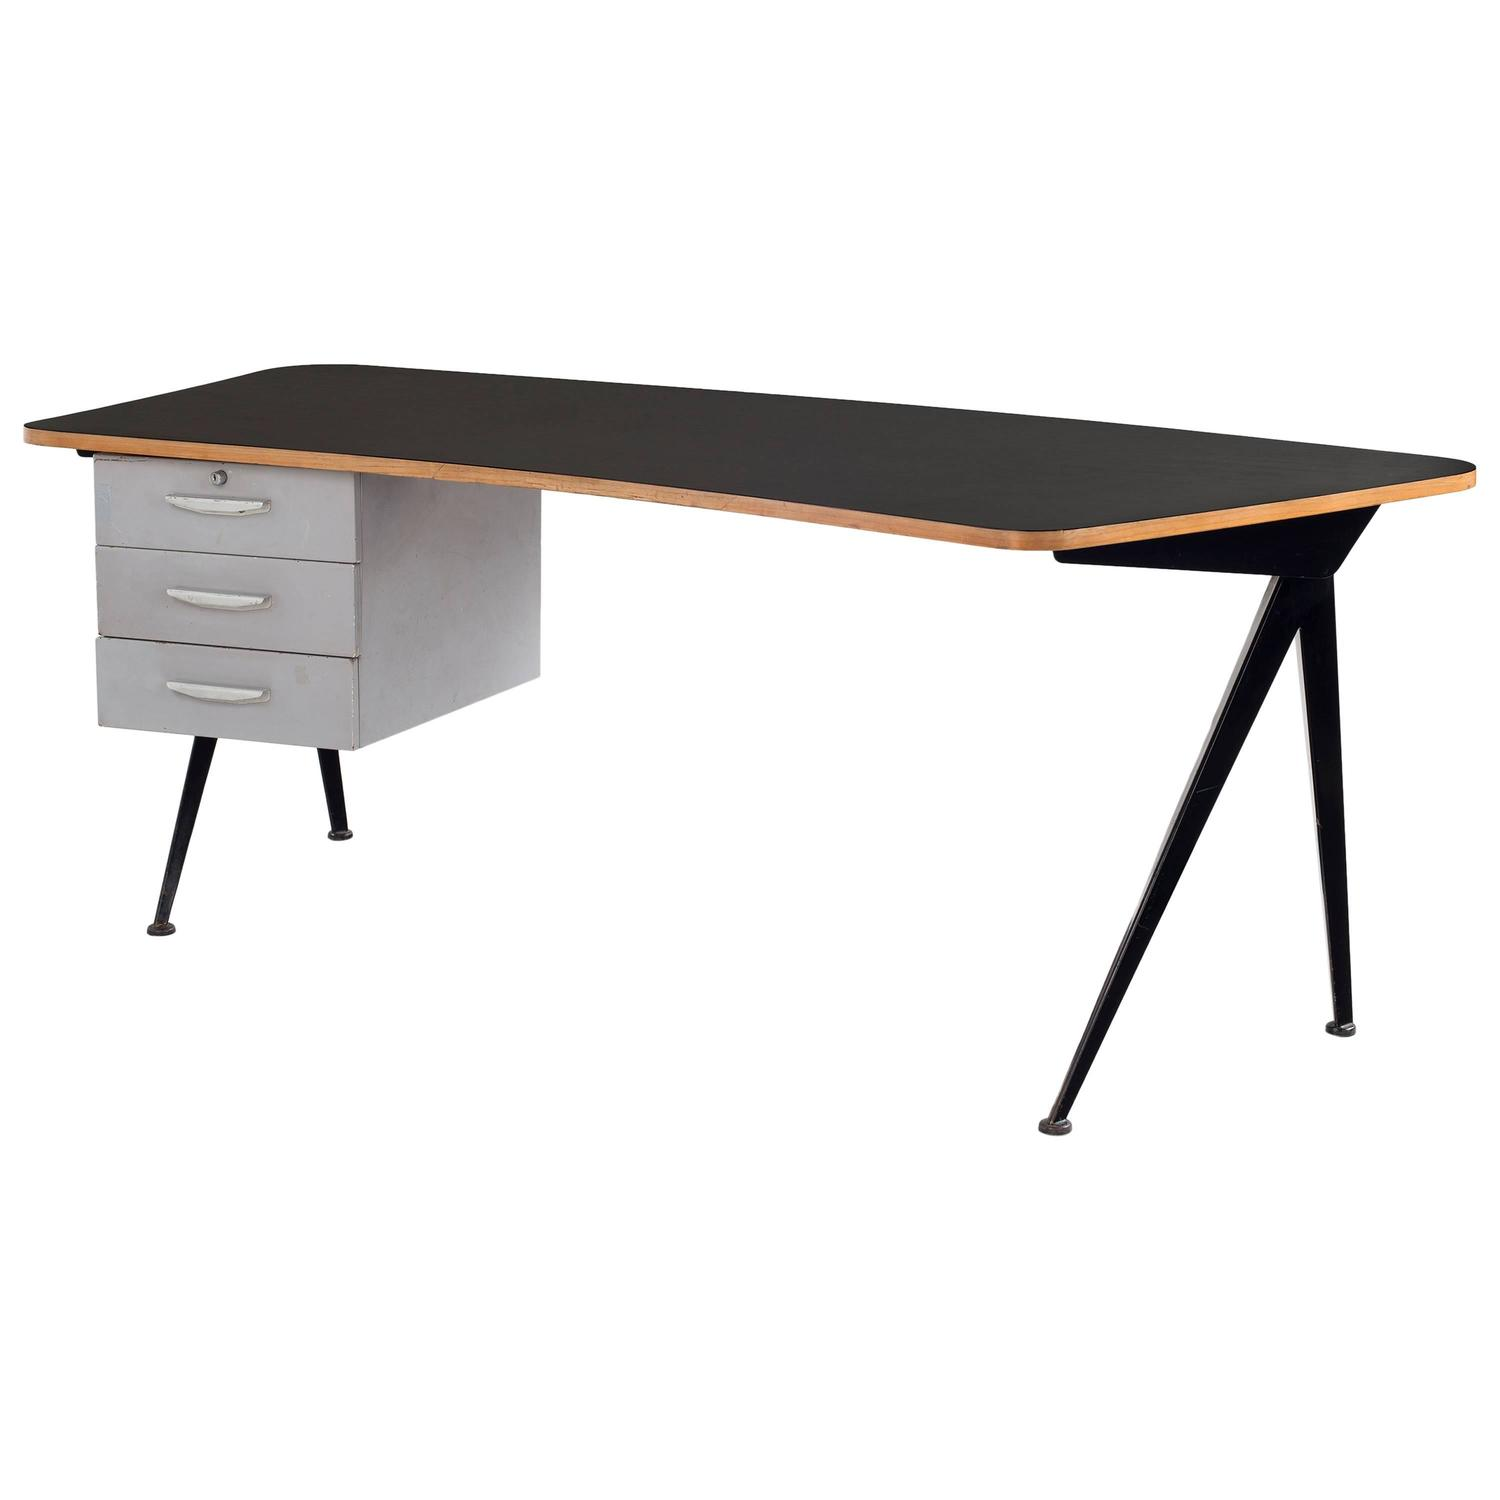 jean prouv large compas curved desk at 1stdibs. Black Bedroom Furniture Sets. Home Design Ideas